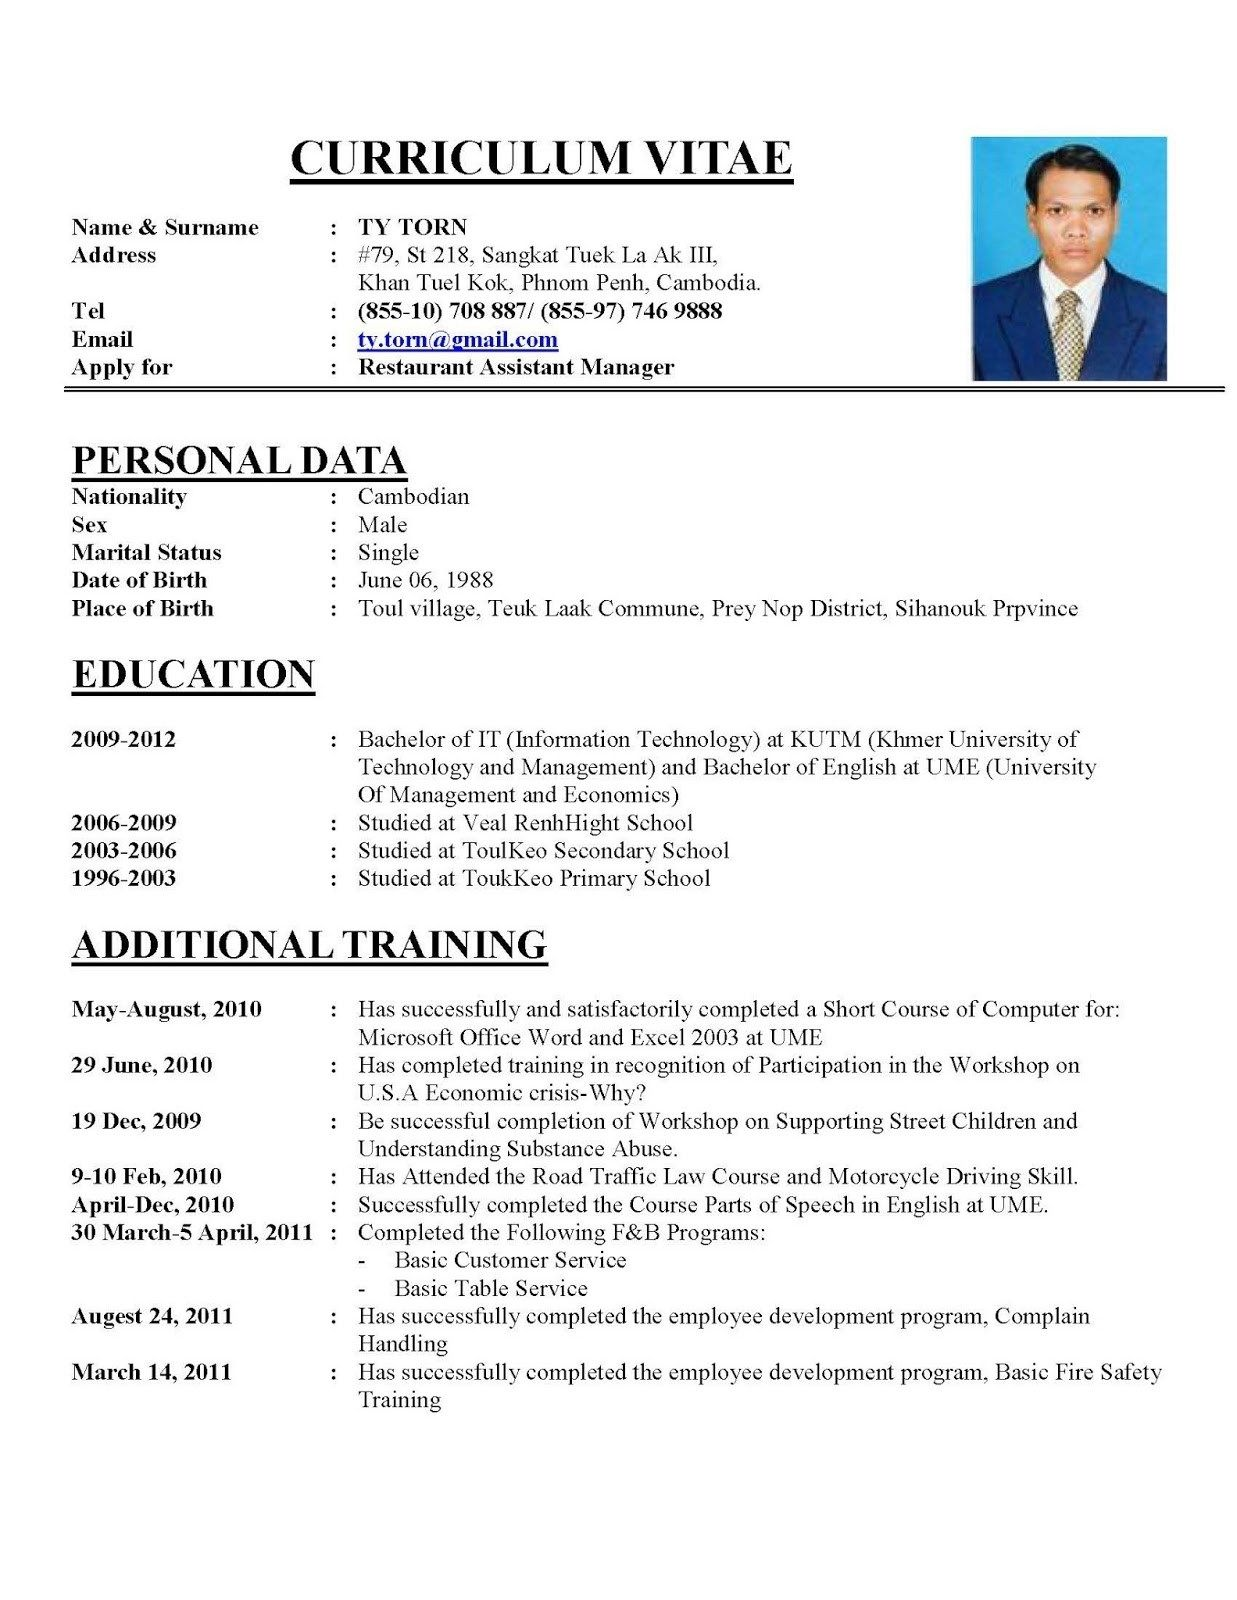 resume templates create free creating cv professional template 2019 download sales manager profile no experience summary